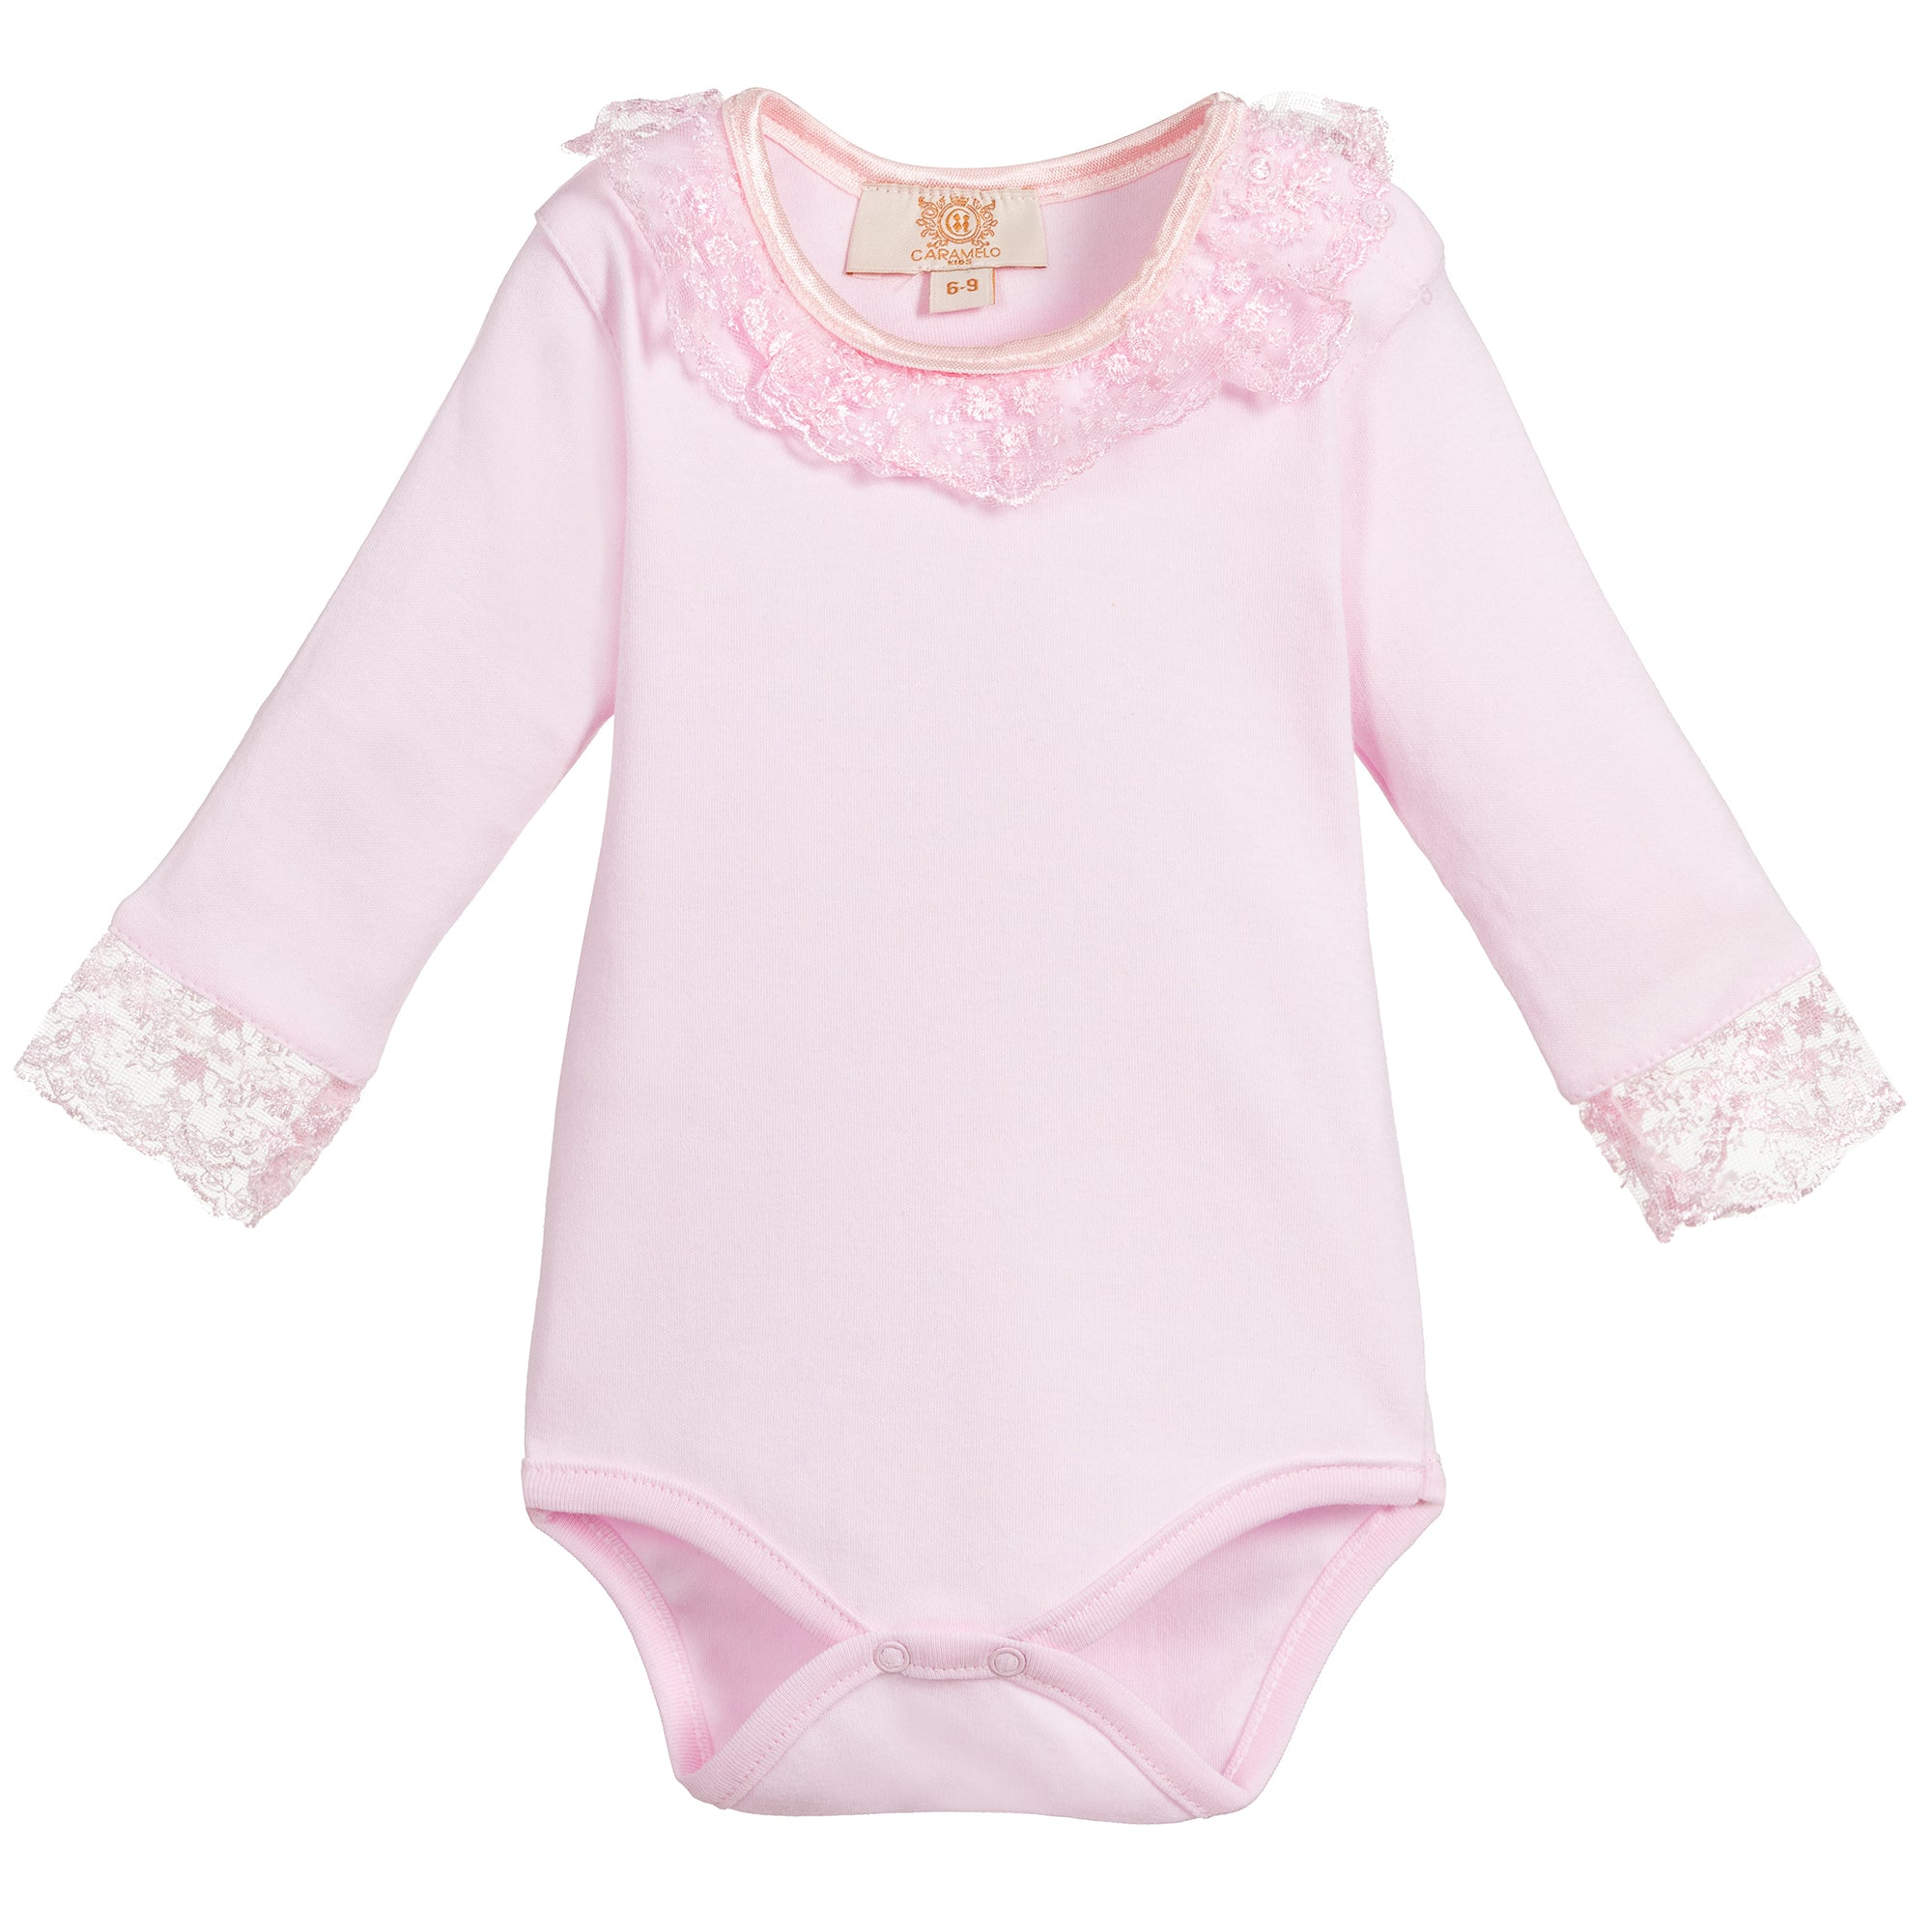 Caramelo Kids Long Sleeve Pink Frill Bodysuit